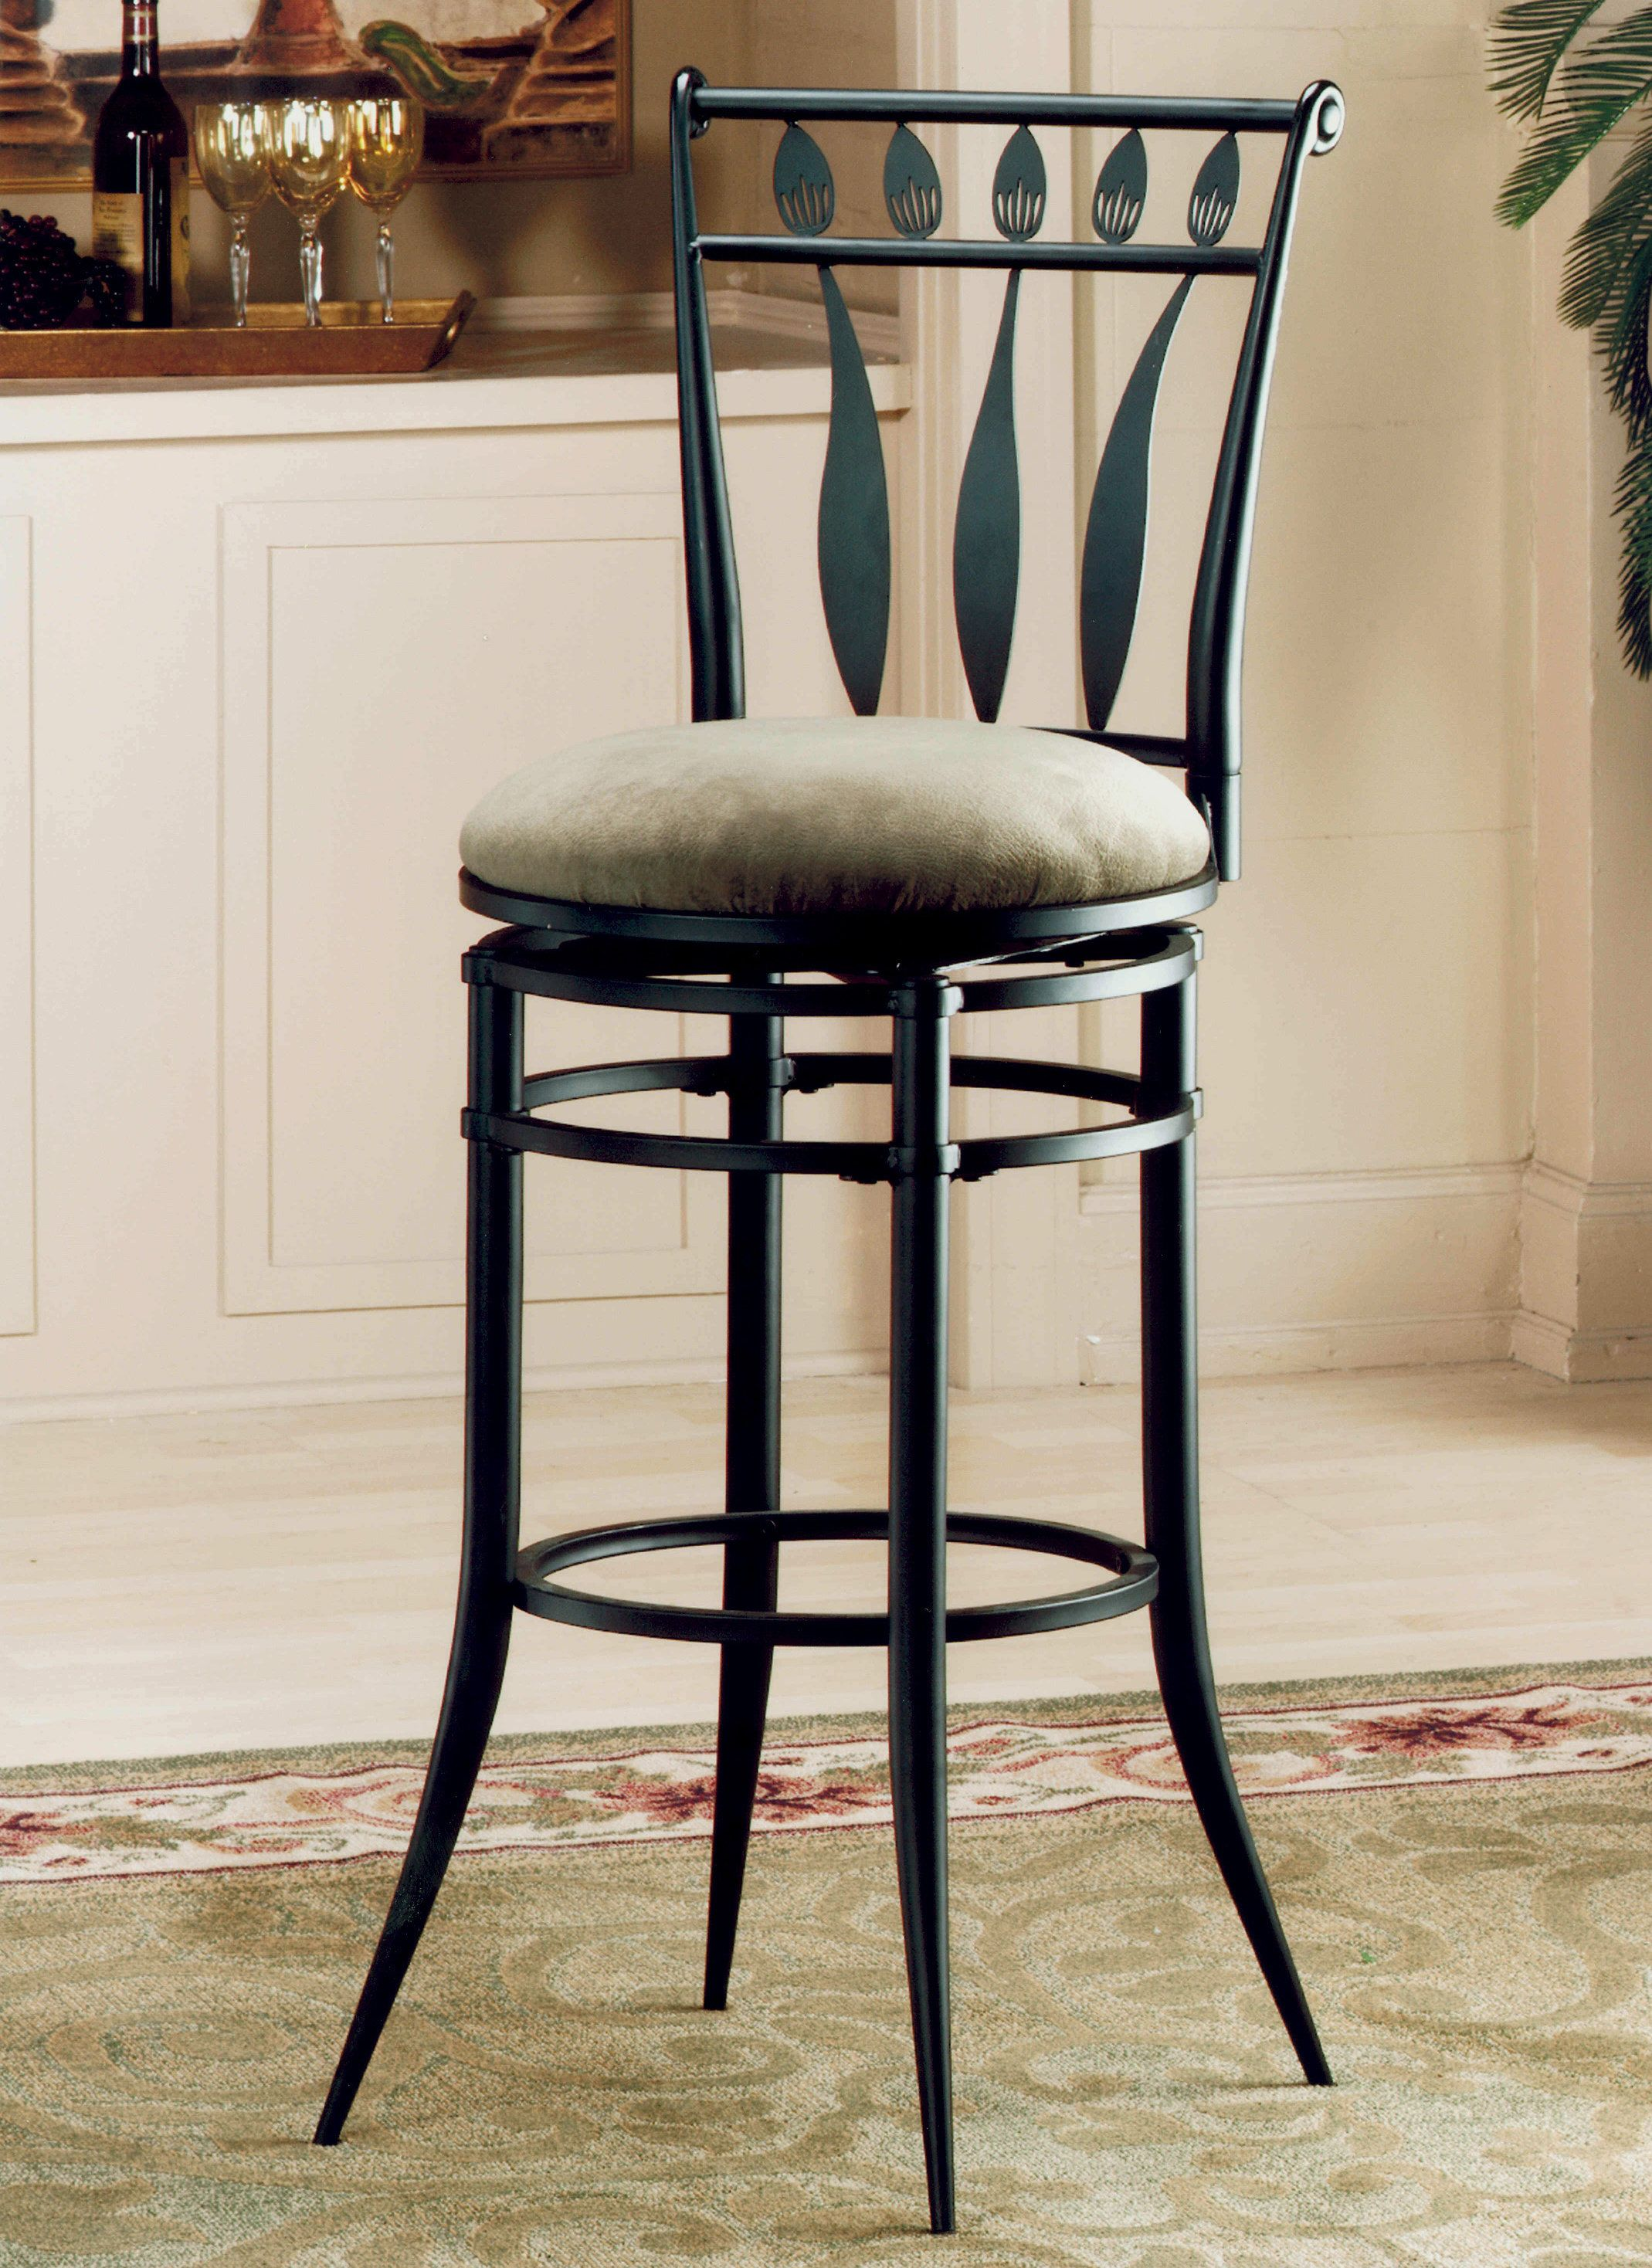 6 Beautiful Swivel Cushioned Bar Stool In Bar Design Ideas Colorful And Distinctive Hand Painted Furniture Is An Excellent Bar Stools Swivel Bar Stools Stool